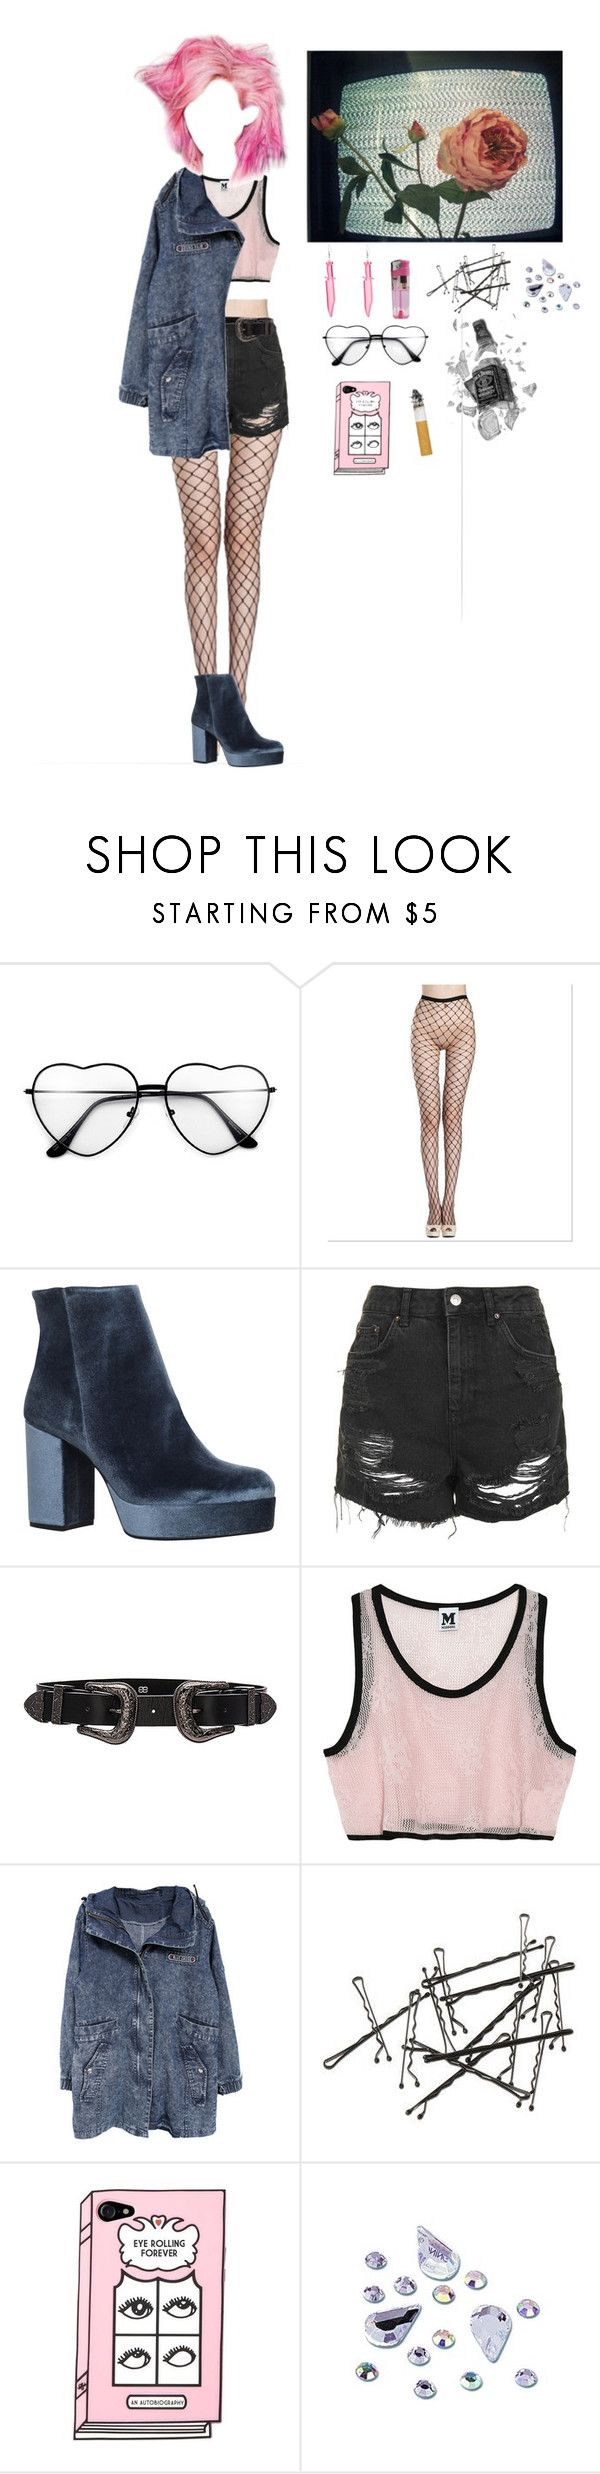 """Untitled #202"" by shelly-alk ❤ liked on Polyvore featuring CO, Carvela, Topshop, B-Low the Belt and Missoni"